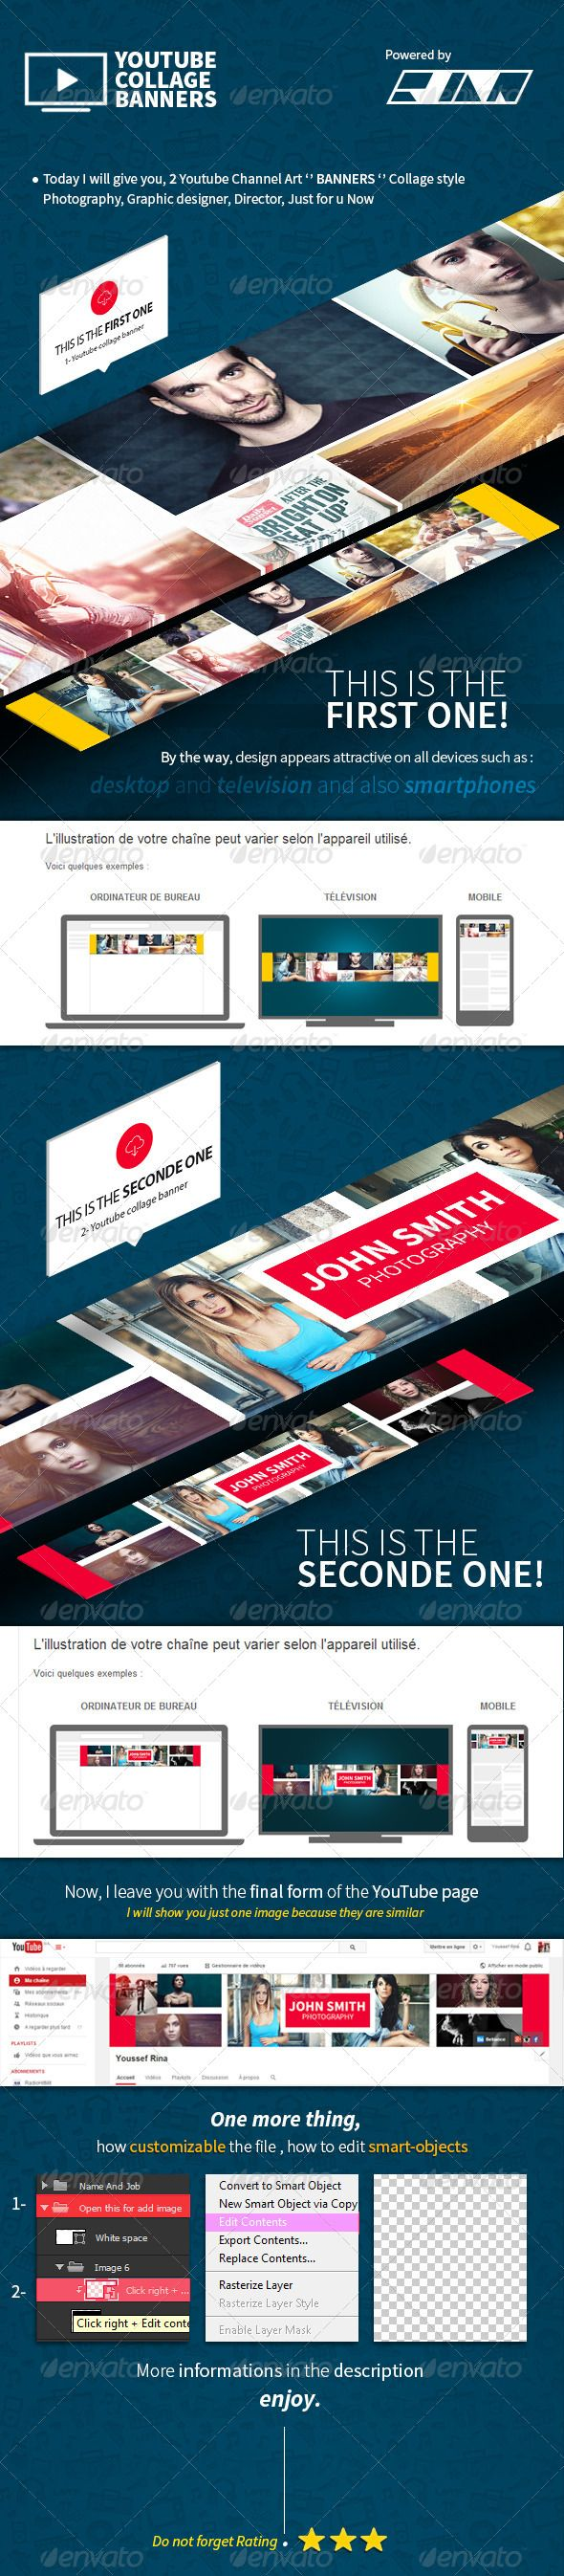 Photoshop poster design youtube - 2 Collage L Youtube Banners